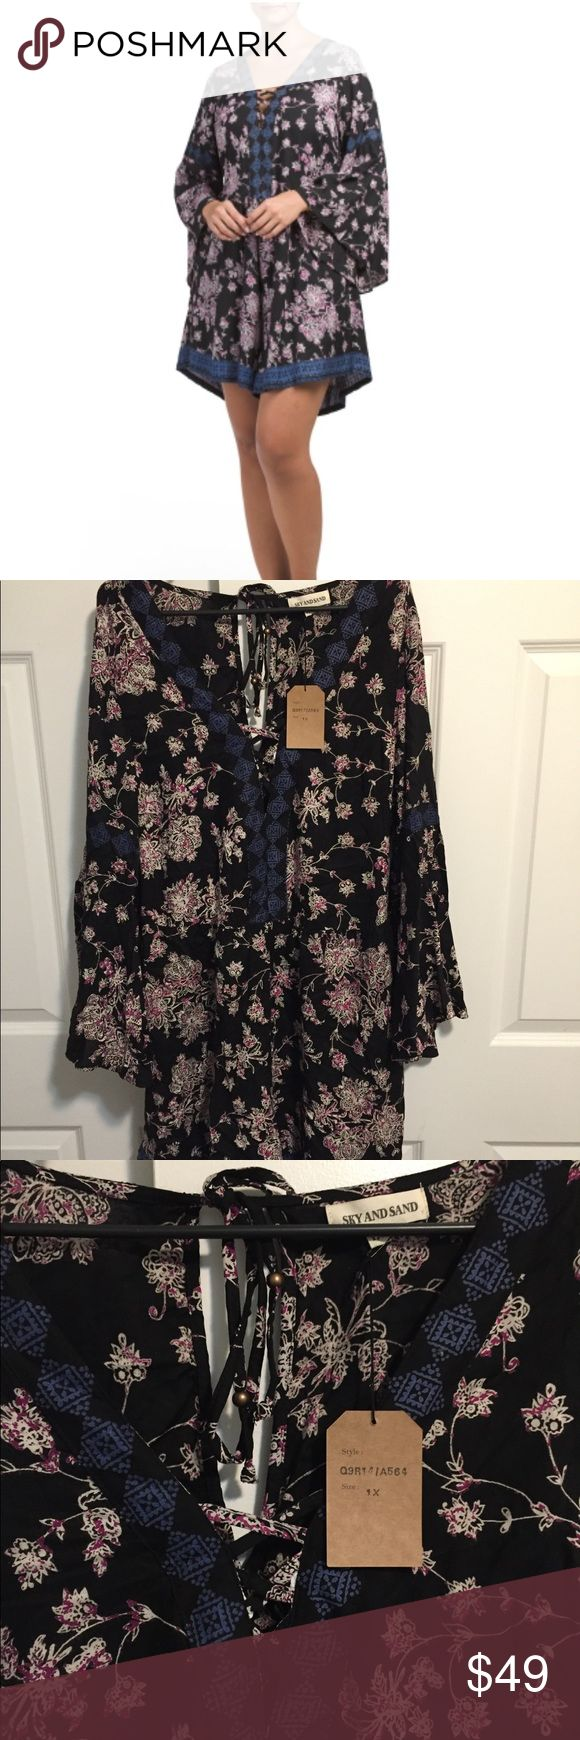 Boho Floral Romper Cute and sexy floral Romper with elastic waistband and tie behind the back! NWT make an offer! Sky and Sand Dresses